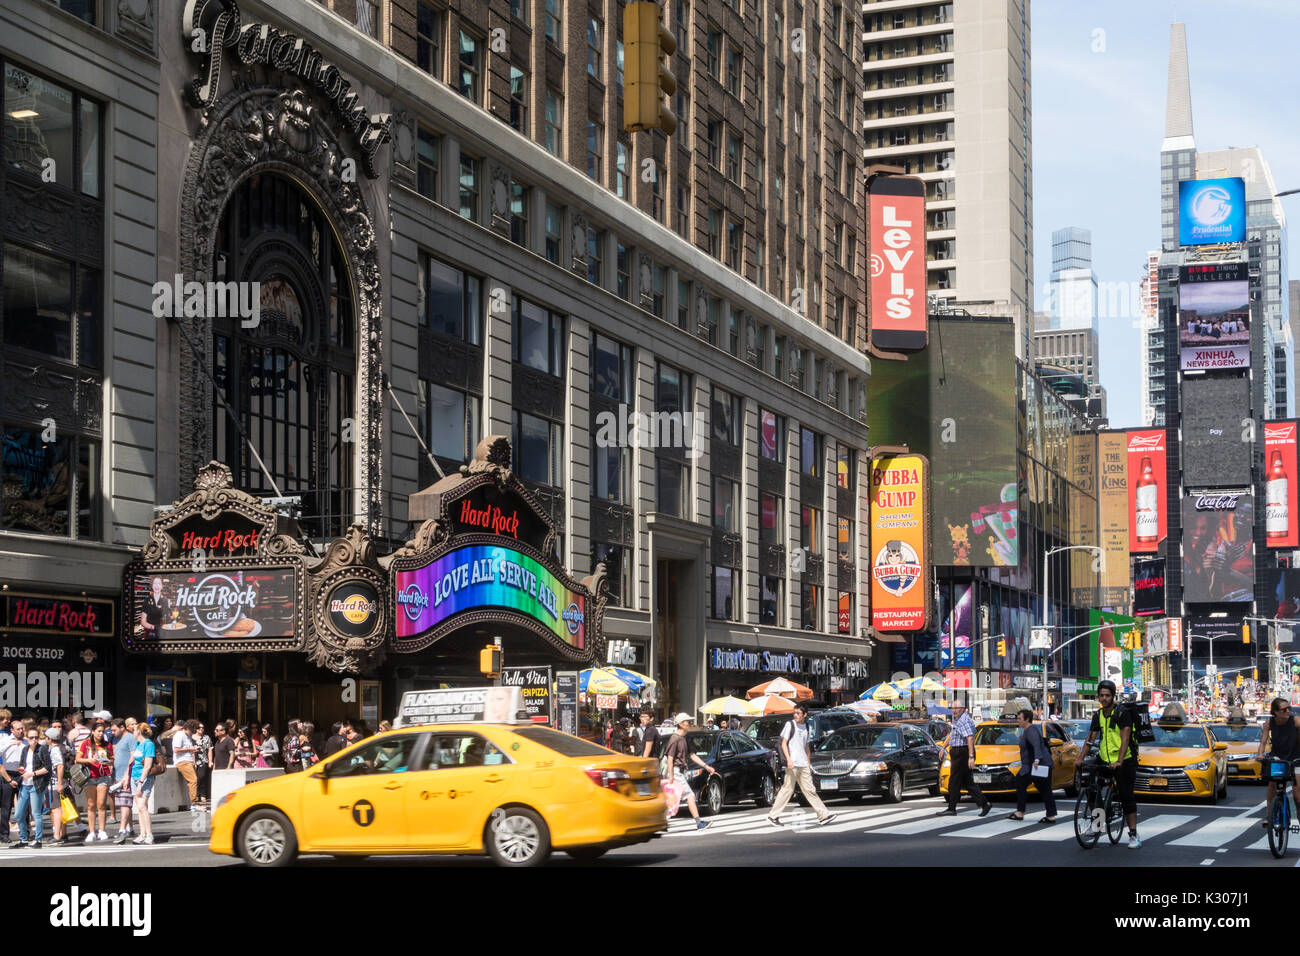 paramount building new york stockfotos paramount building new york bilder alamy. Black Bedroom Furniture Sets. Home Design Ideas